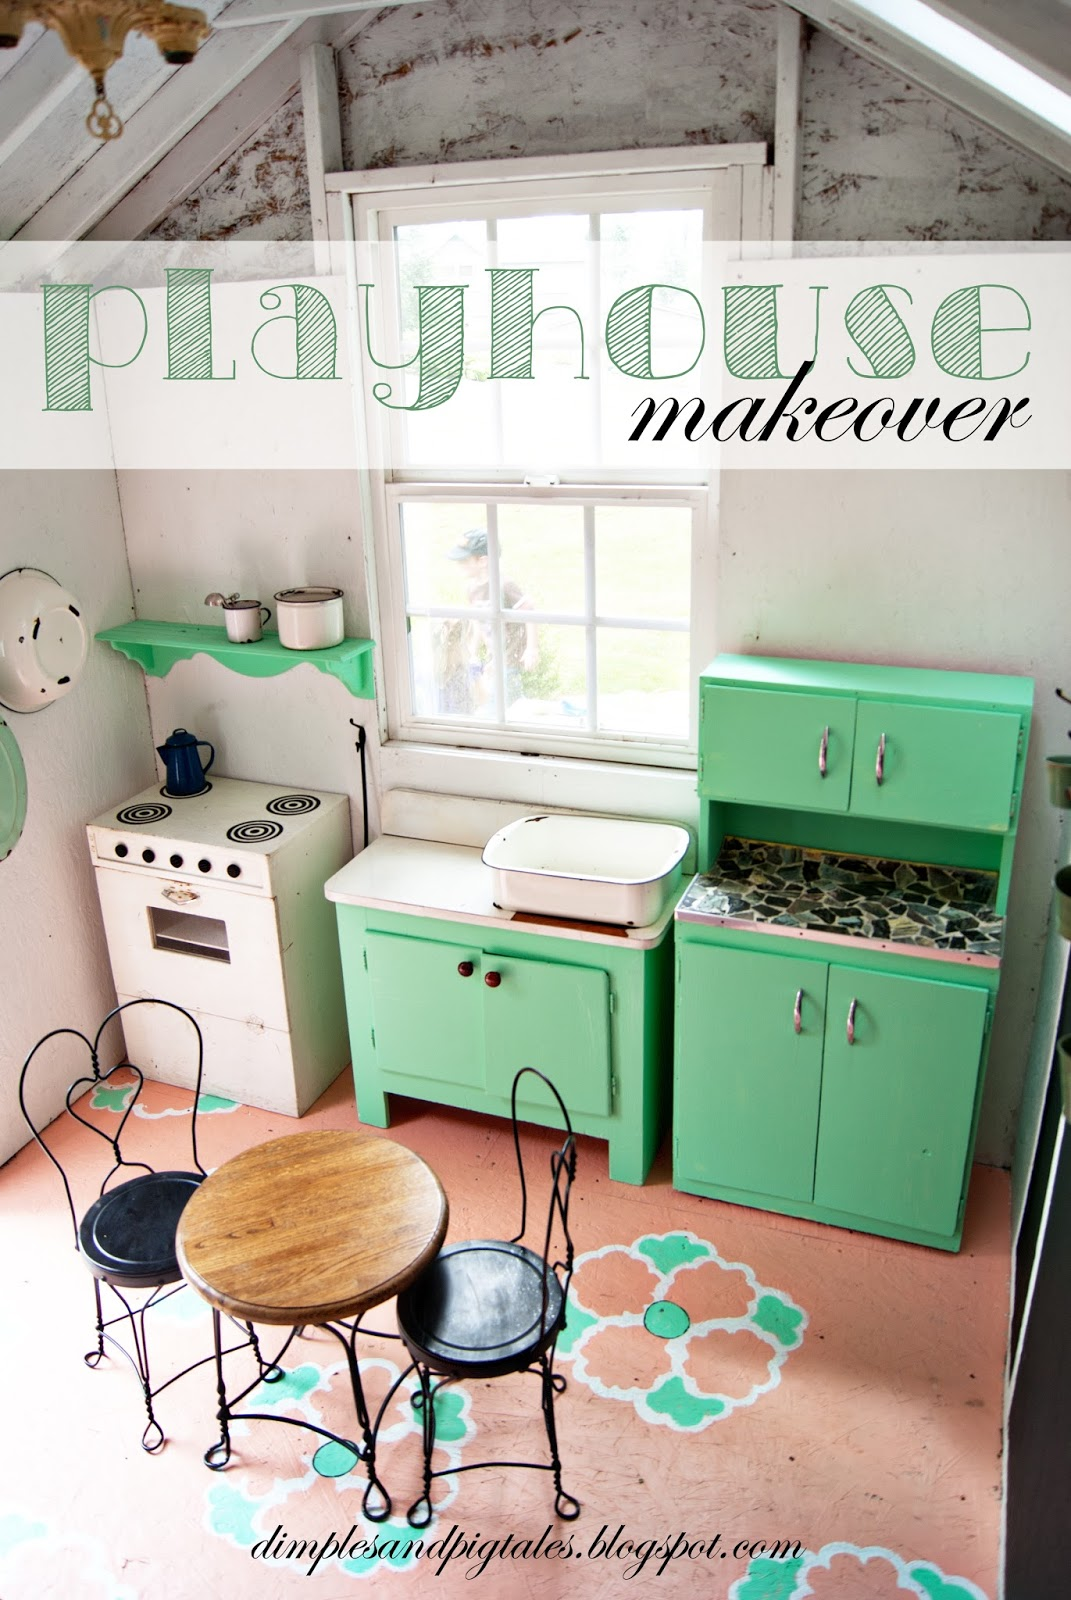 Playhouse makeover in Mint, Coral and Black